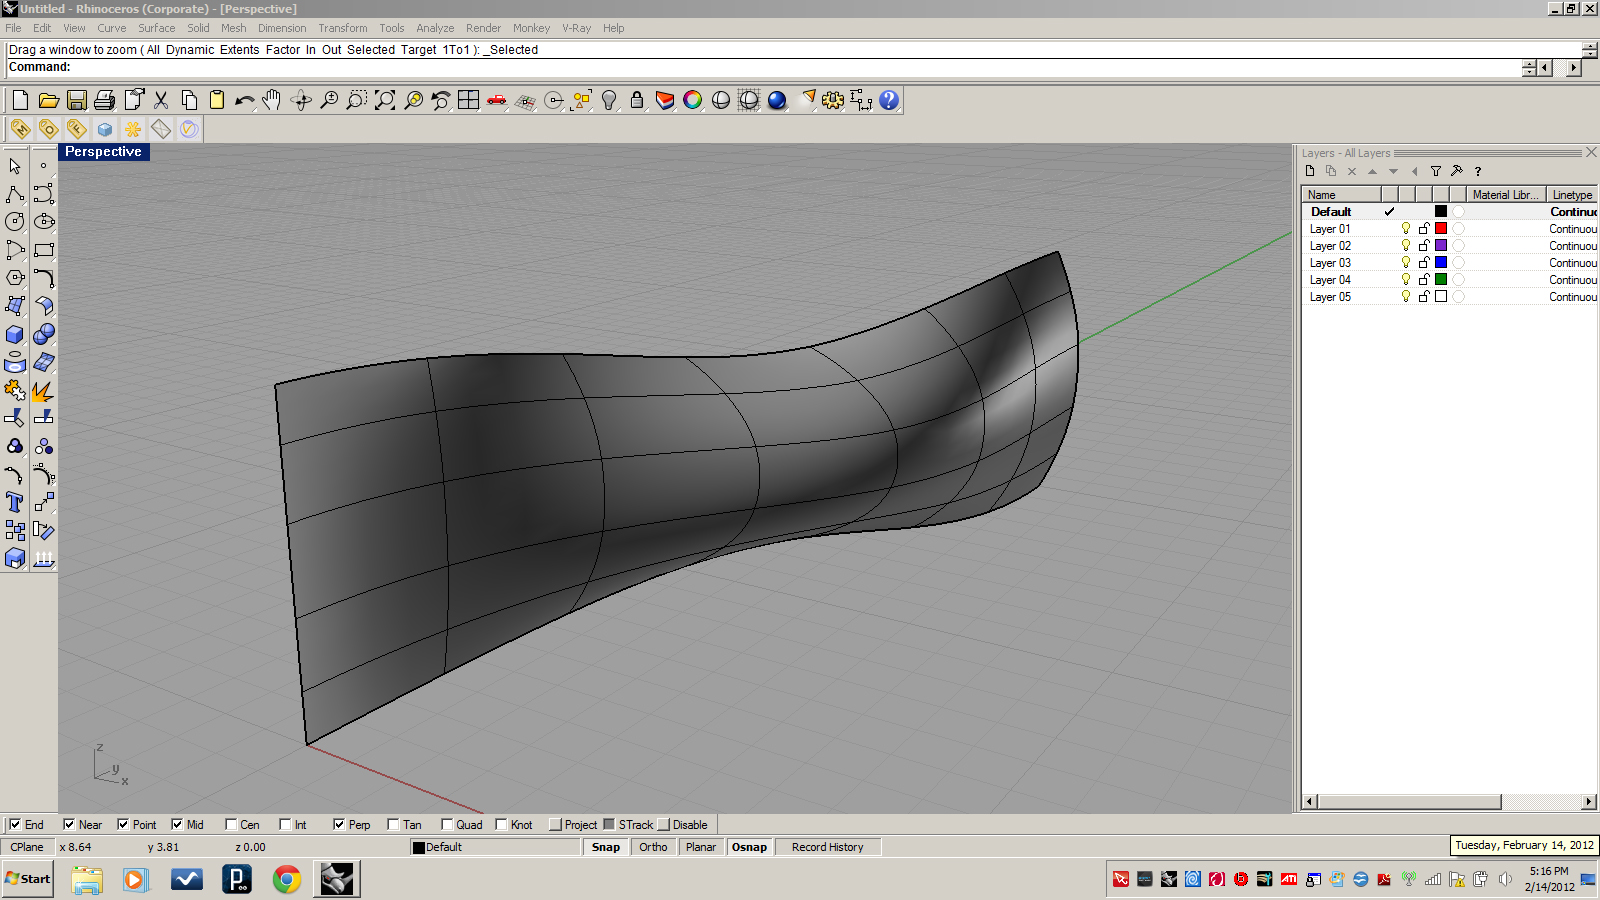 RPI_Arch Digital Sessions: Maya: Importing from Rhino and Nurbs to